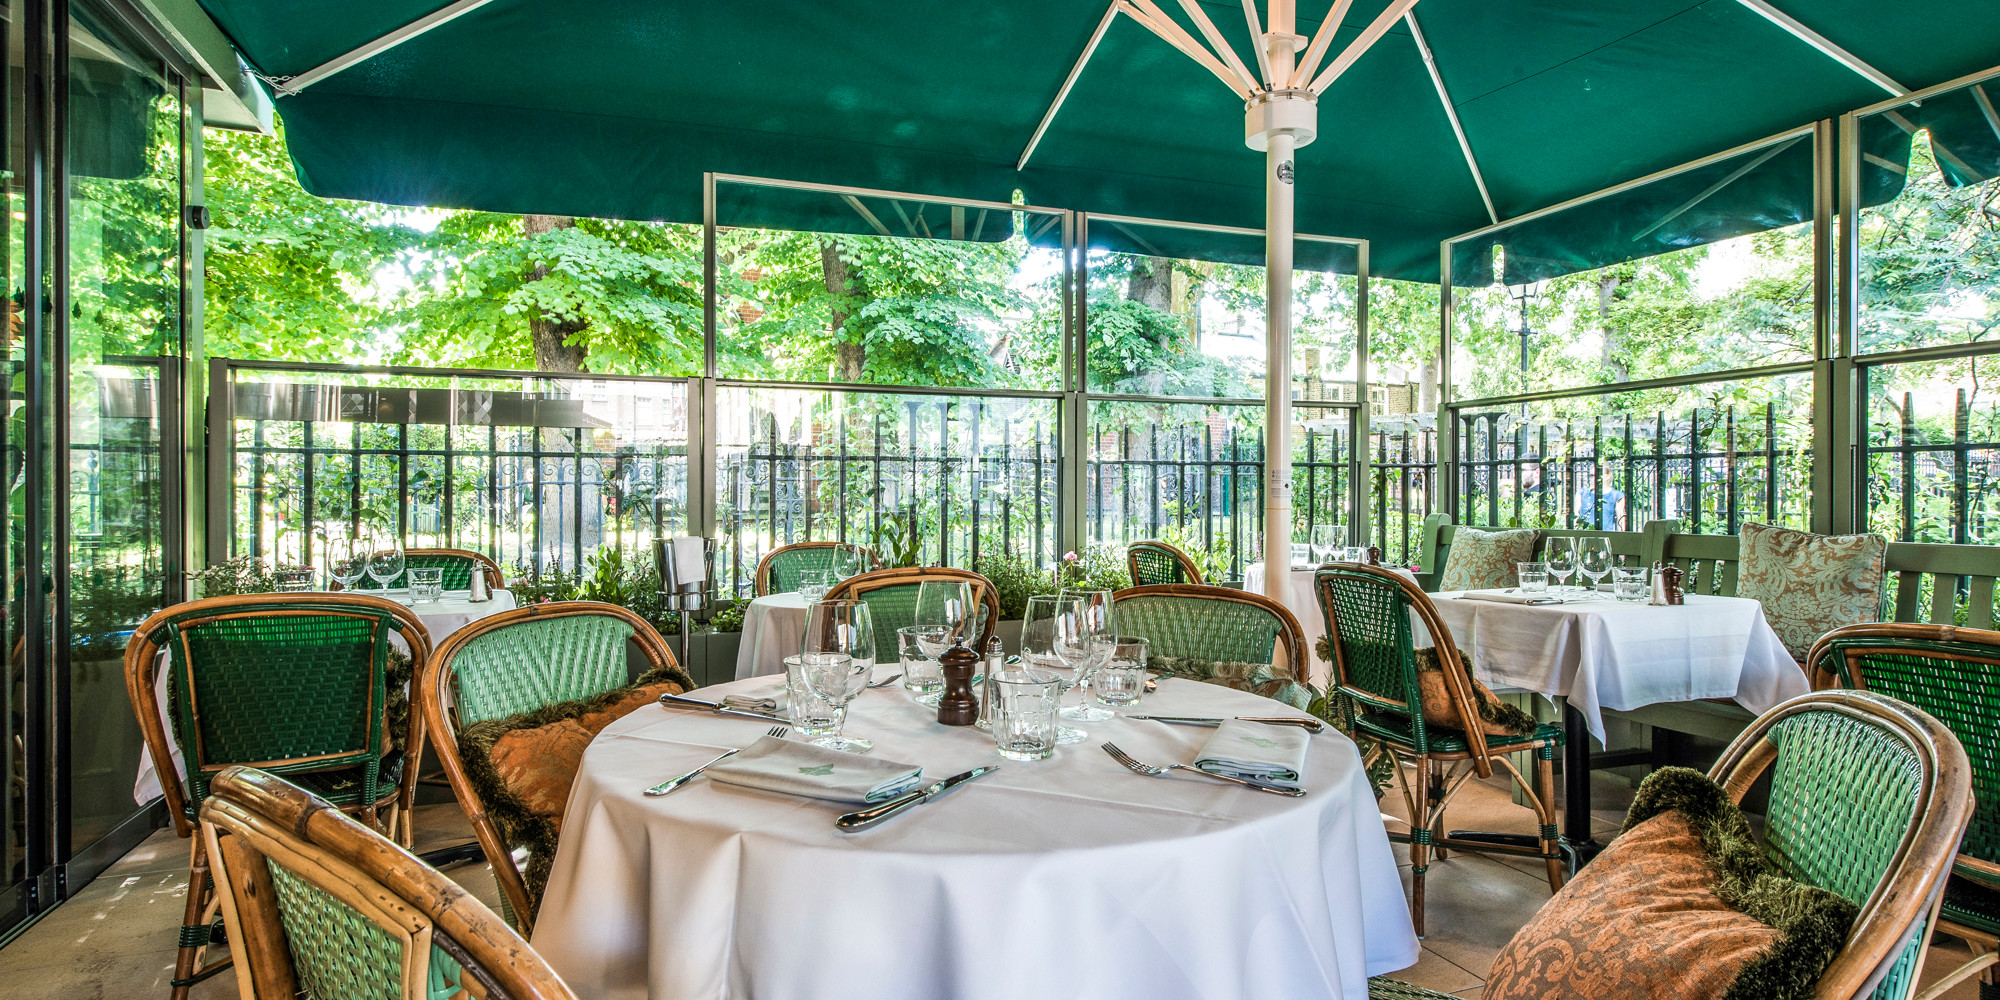 Outdoor dining - The Ivy Kensington Brasserie - The Ivy Kensington Brasserie